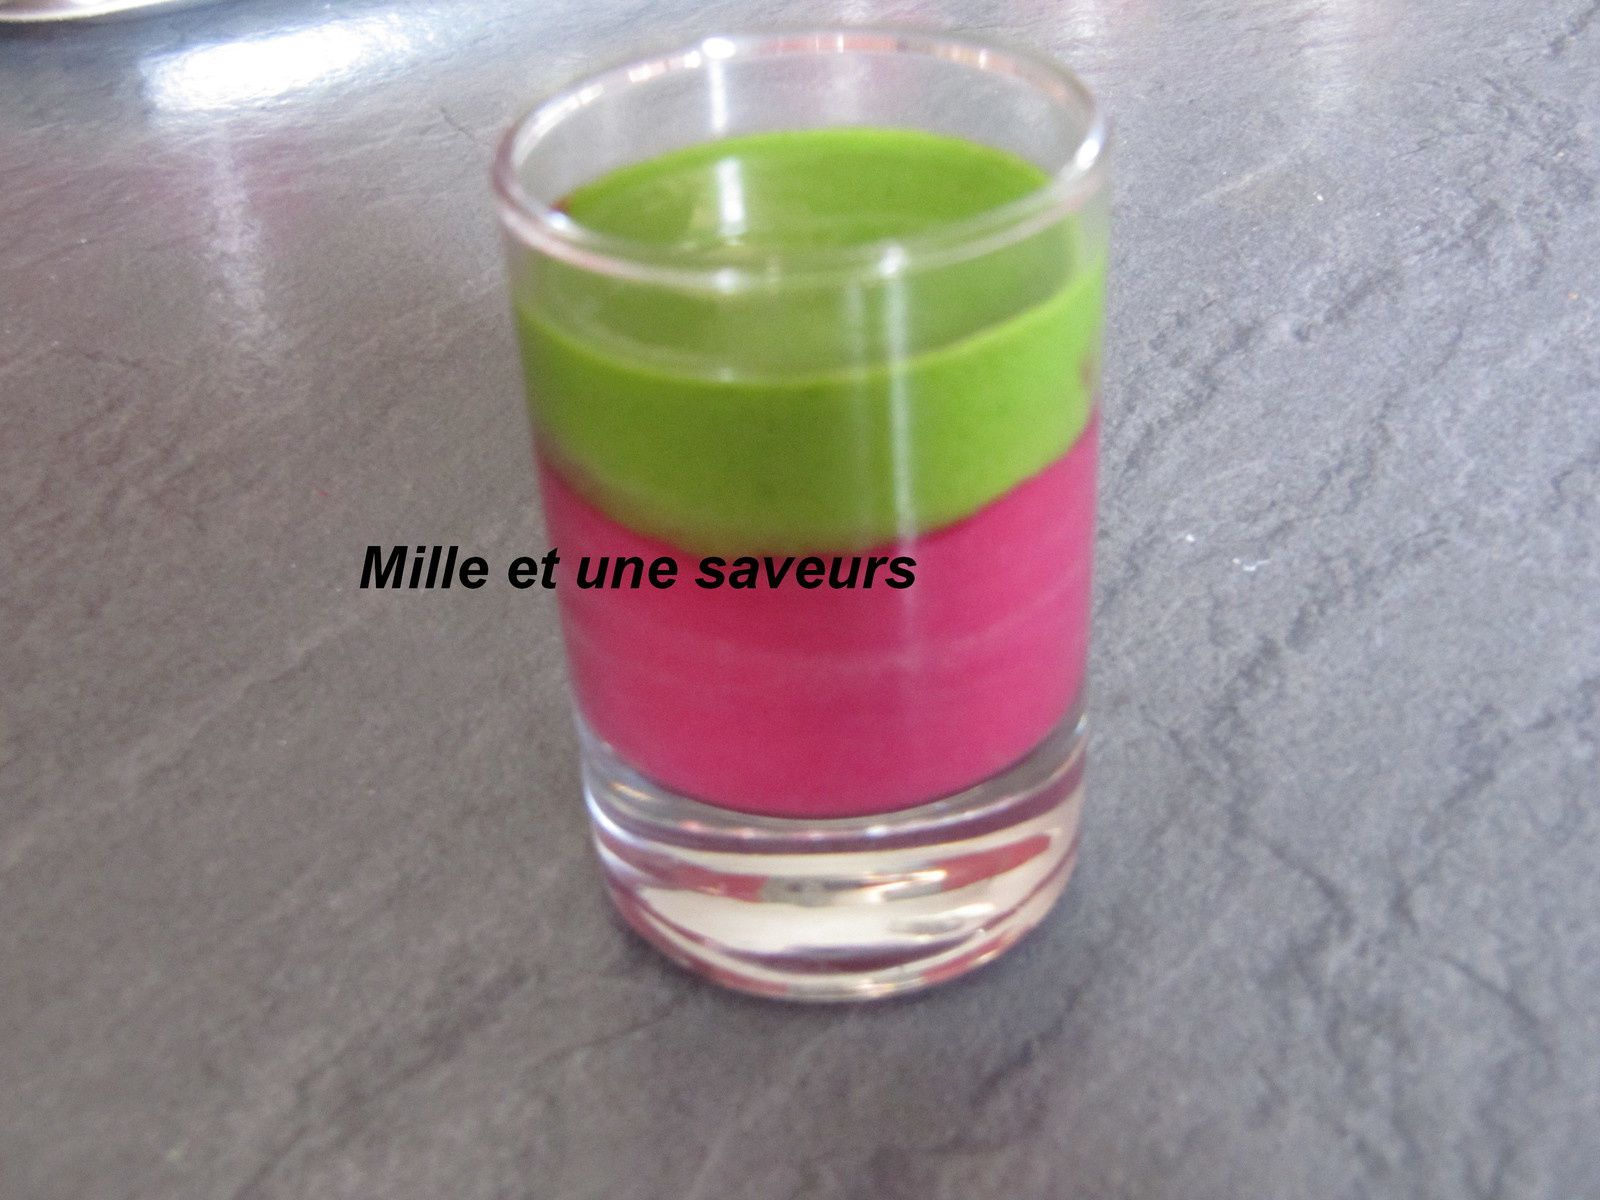 Mousse de betteraves au thon et son émulsion de persil